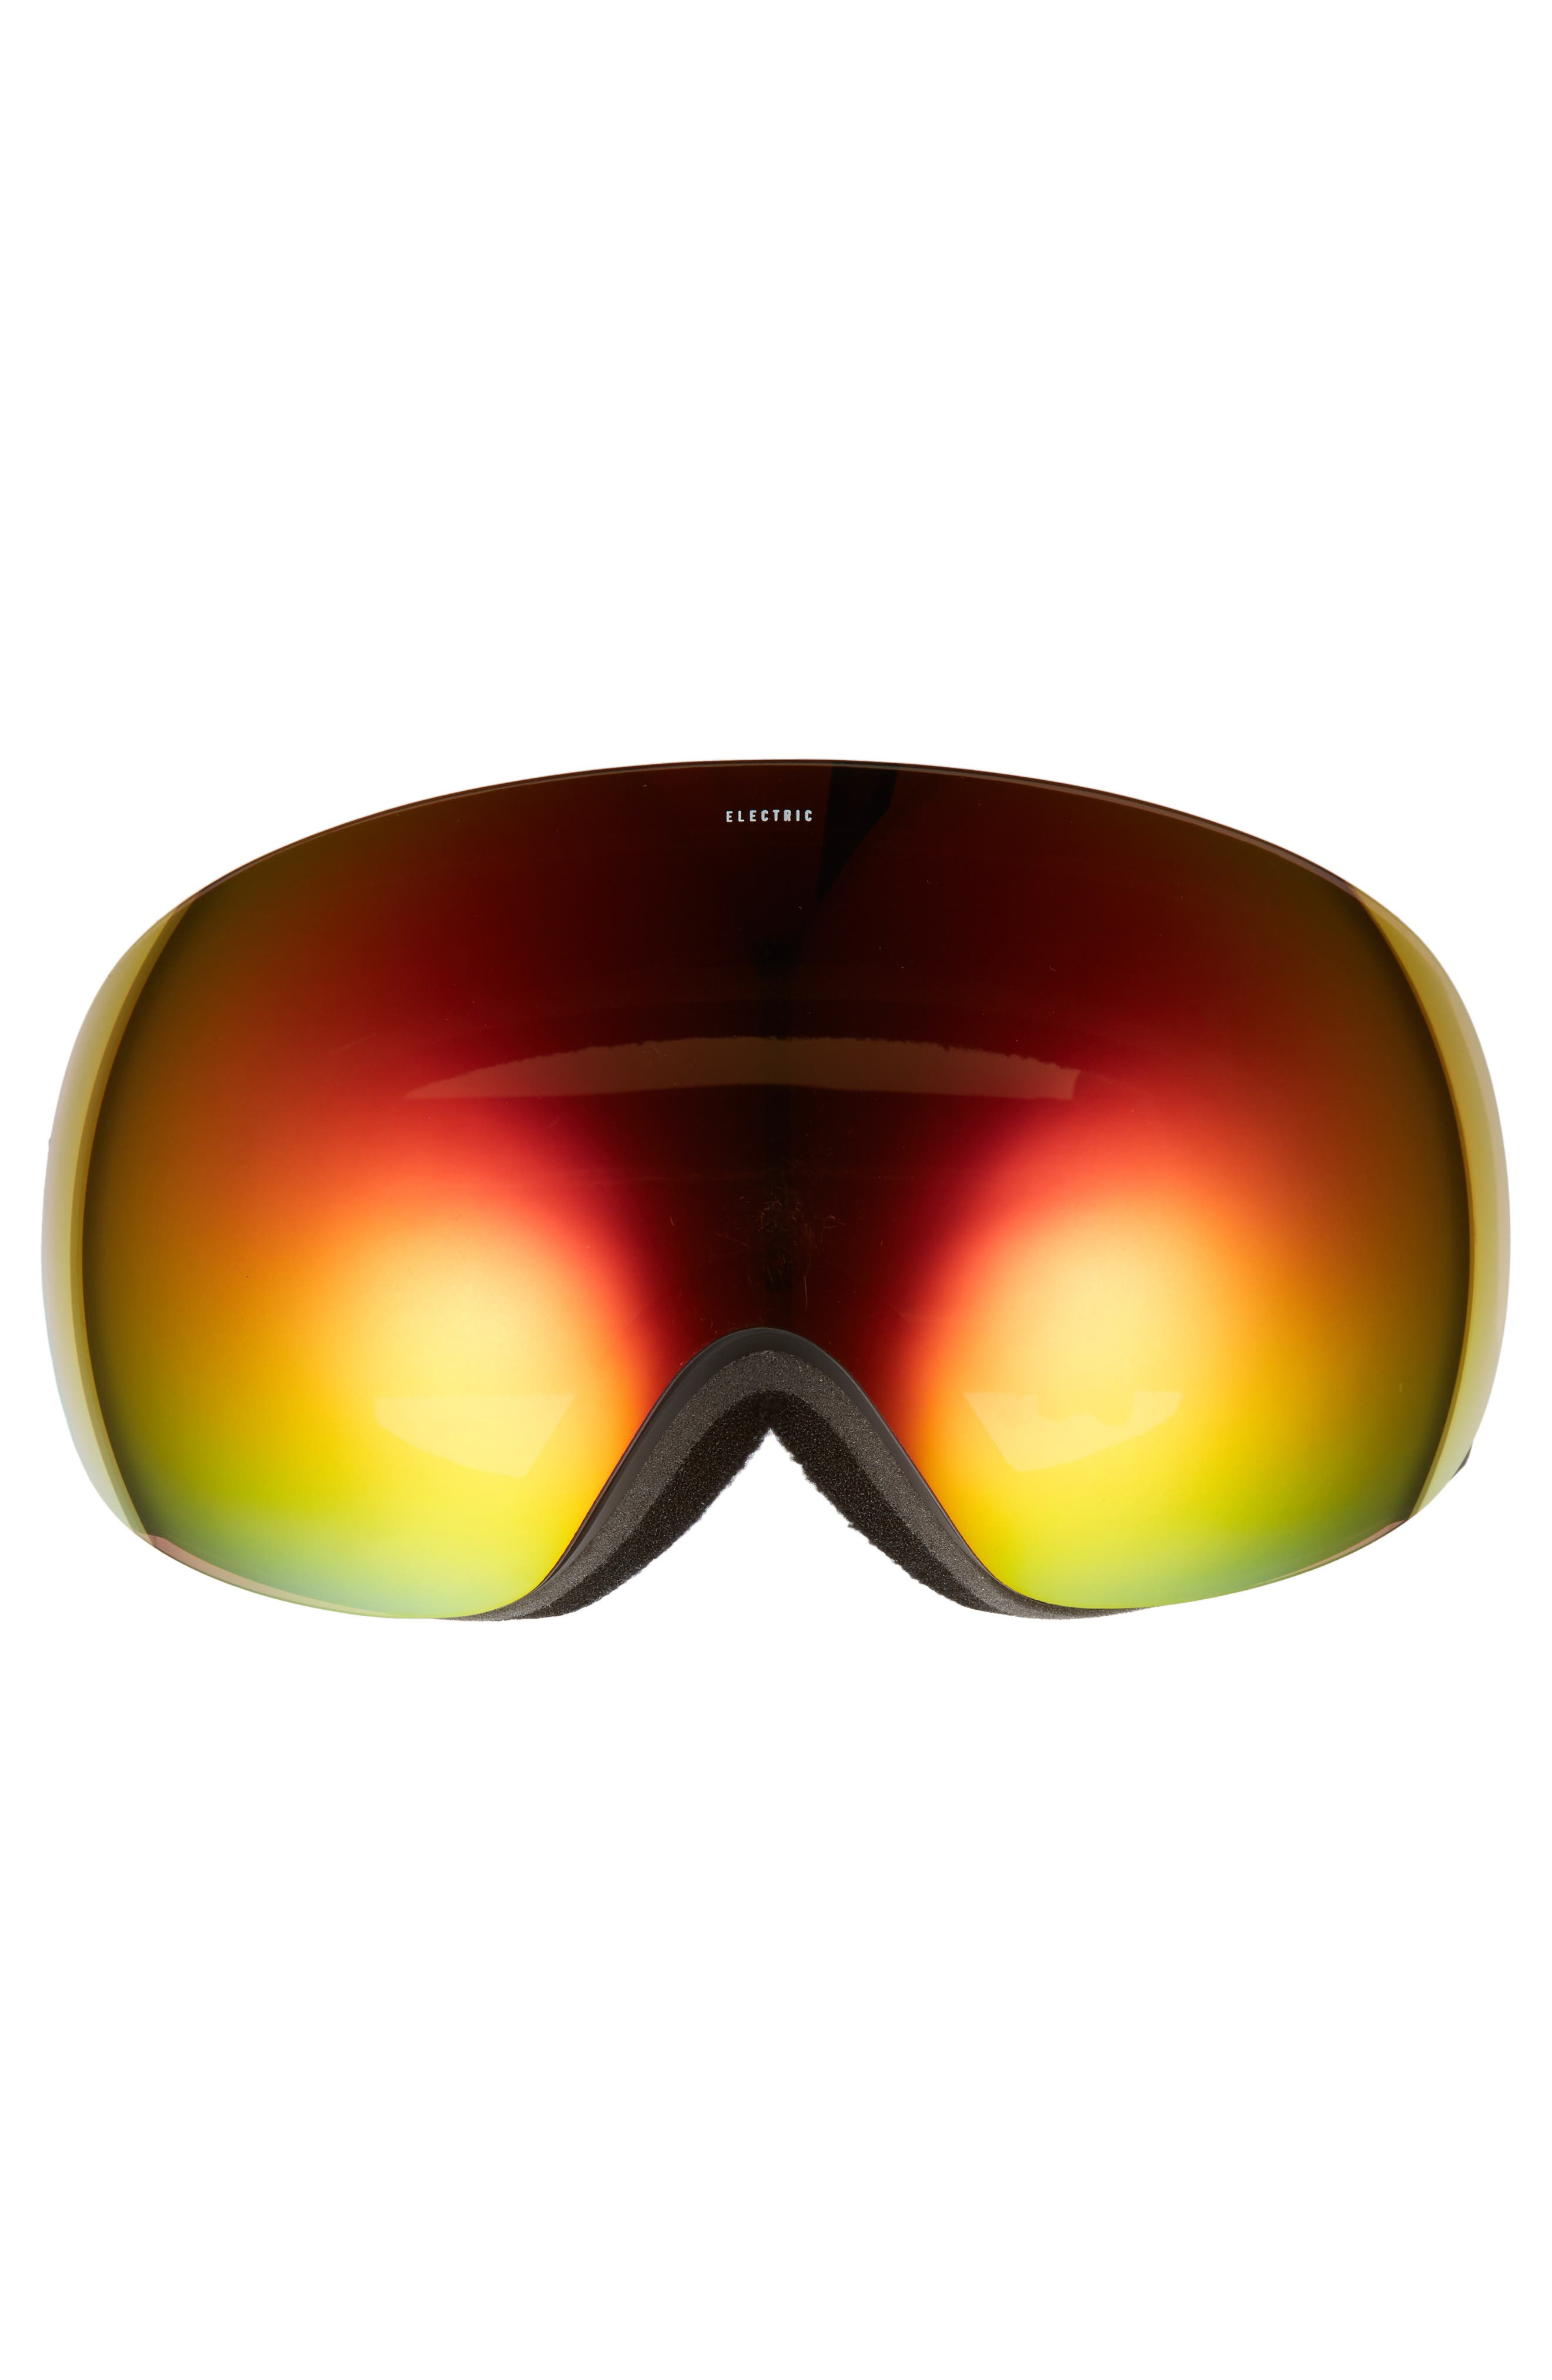 Alternate Image 3  - ELECTRIC EG3 Snow Goggles